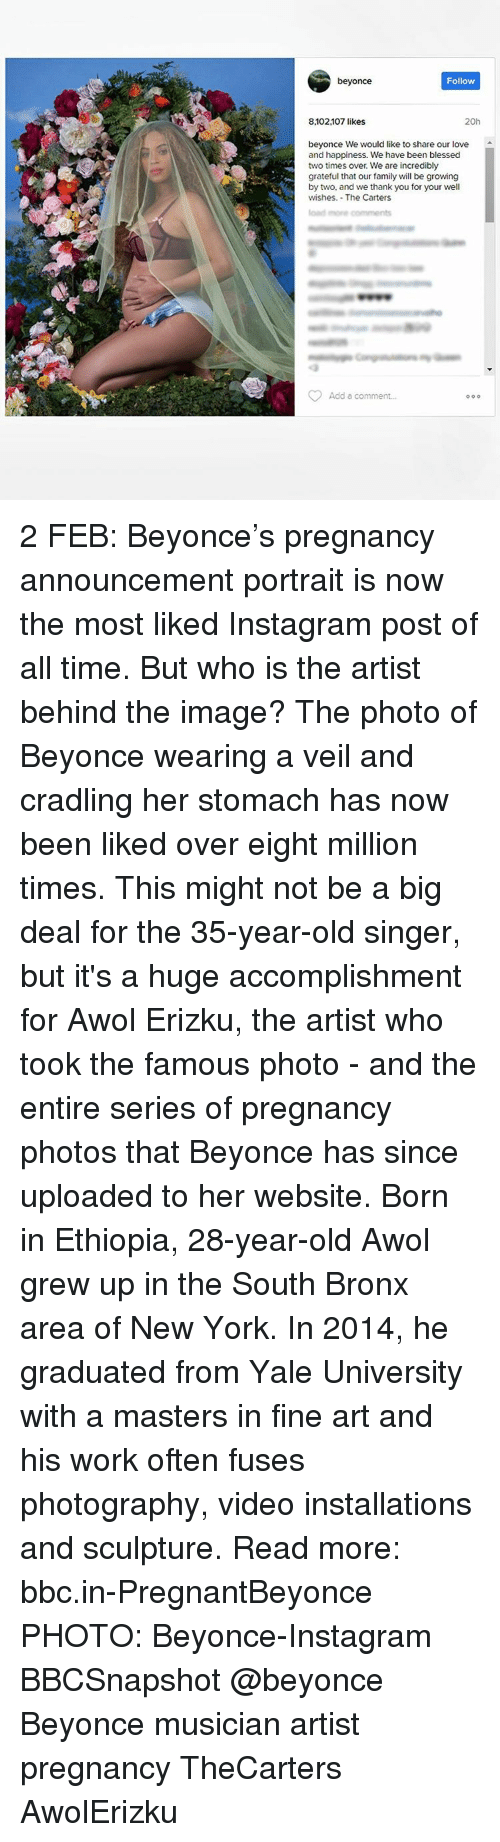 Memes, Yale University, and Pregnancy: beyonce  Follow  8.102107 likes  20h  beyonce We would like to share our love  and happiness. We have been blessed  two times over. We are incredibly  grateful that our family will be growing  by two, and we thank you for your well  wishes. The Carters  Add a comment...  o 0 0 2 FEB: Beyonce's pregnancy announcement portrait is now the most liked Instagram post of all time. But who is the artist behind the image? The photo of Beyonce wearing a veil and cradling her stomach has now been liked over eight million times. This might not be a big deal for the 35-year-old singer, but it's a huge accomplishment for Awol Erizku, the artist who took the famous photo - and the entire series of pregnancy photos that Beyonce has since uploaded to her website. Born in Ethiopia, 28-year-old Awol grew up in the South Bronx area of New York. In 2014, he graduated from Yale University with a masters in fine art and his work often fuses photography, video installations and sculpture. Read more: bbc.in-PregnantBeyonce PHOTO: Beyonce-Instagram BBCSnapshot @beyonce Beyonce musician artist pregnancy TheCarters AwolErizku